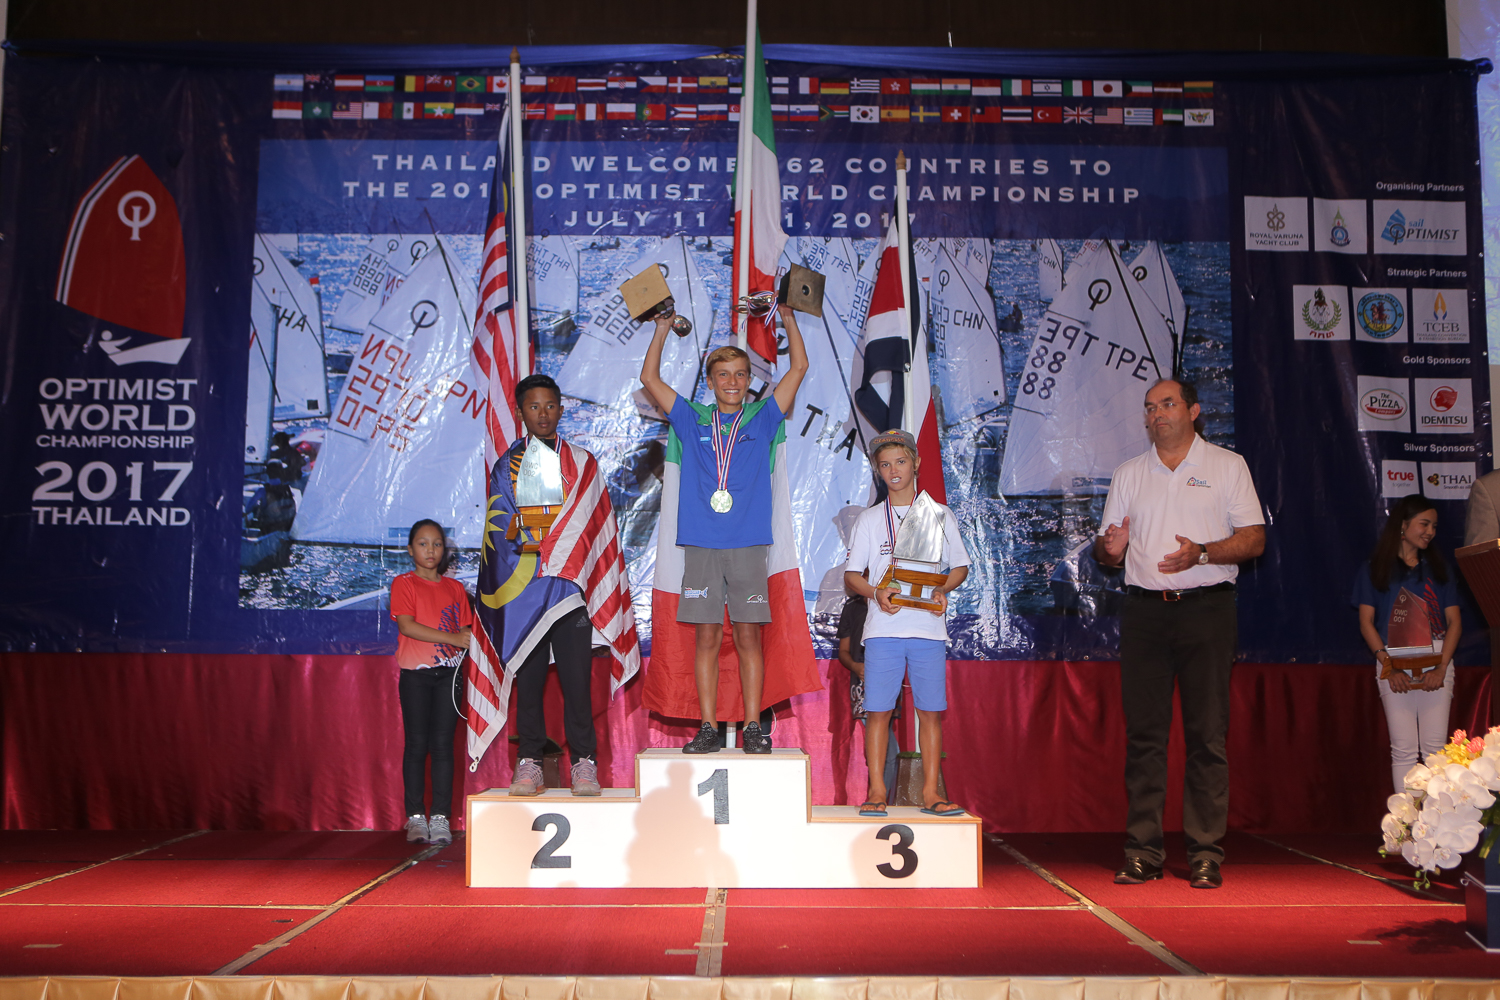 Prize giving at the 2017 Opti Worlds. Photo supplied.